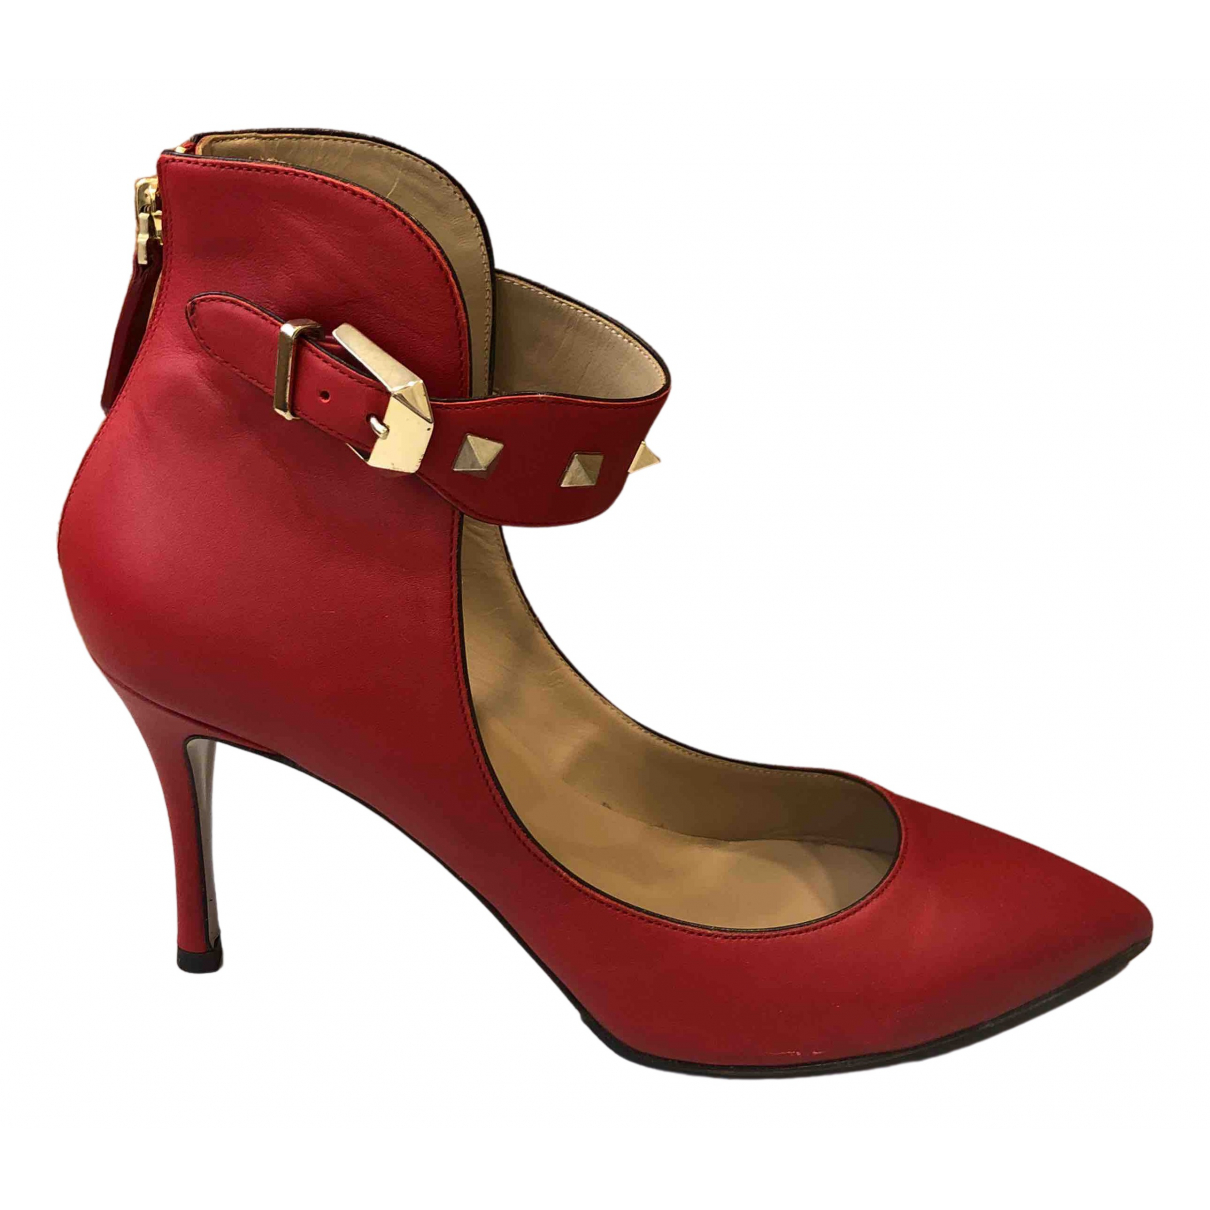 Valentino Garavani \N Red Leather Heels for Women 38.5 IT